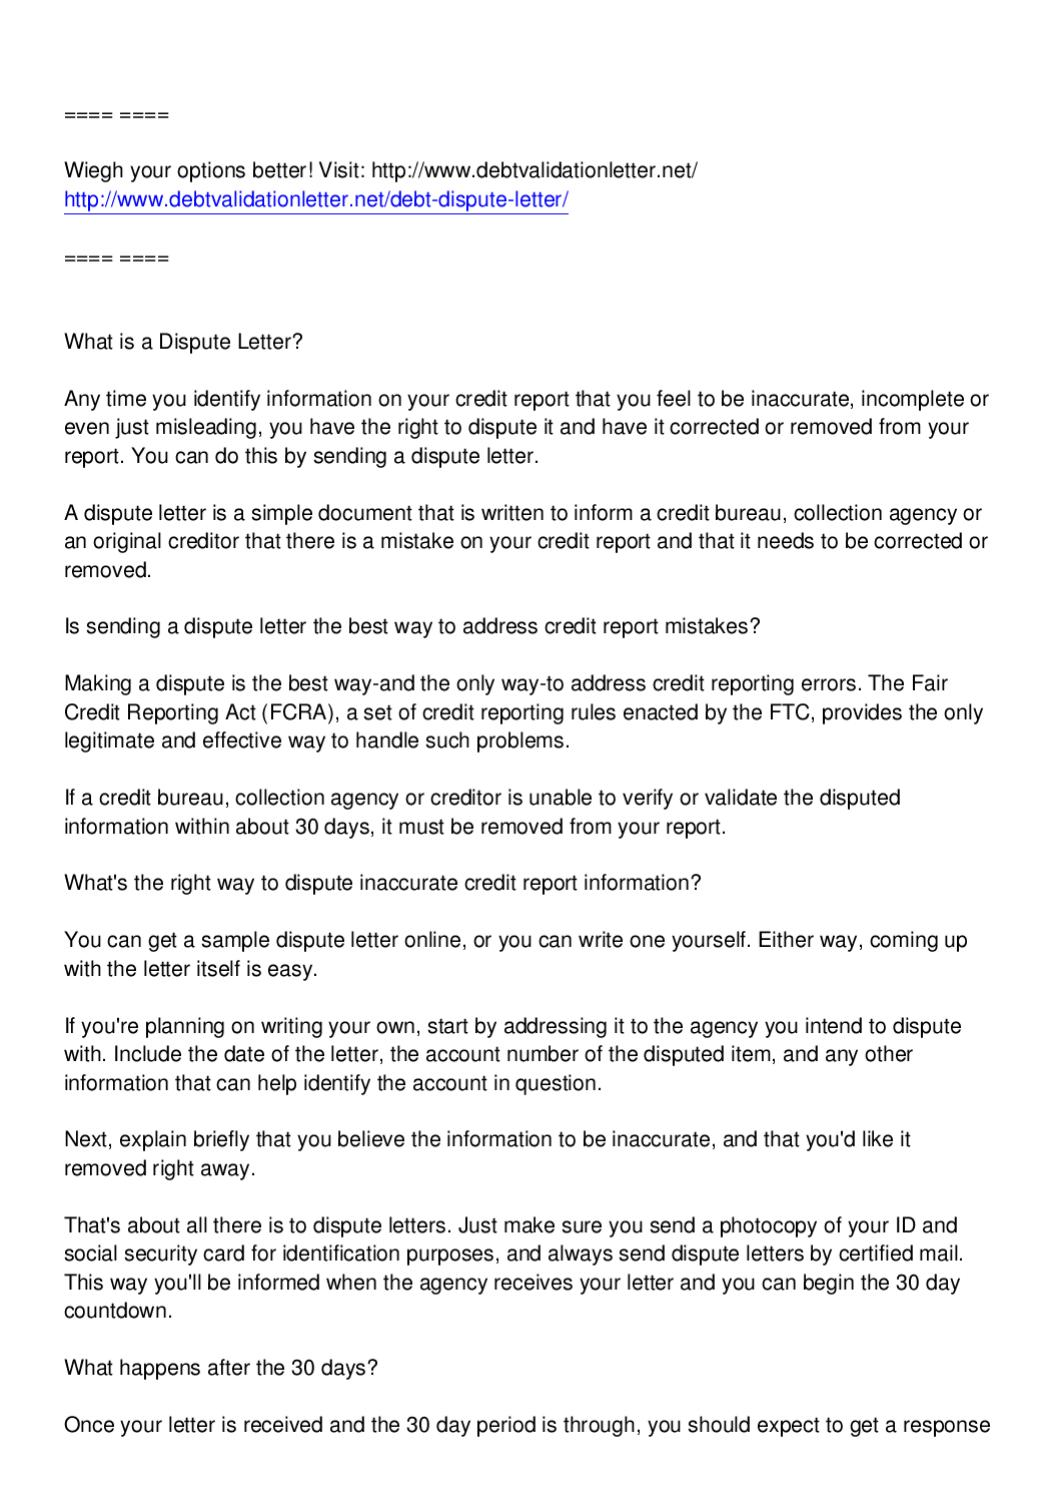 write a debt dispute letter to raise your credit score by stella marie lee issuu